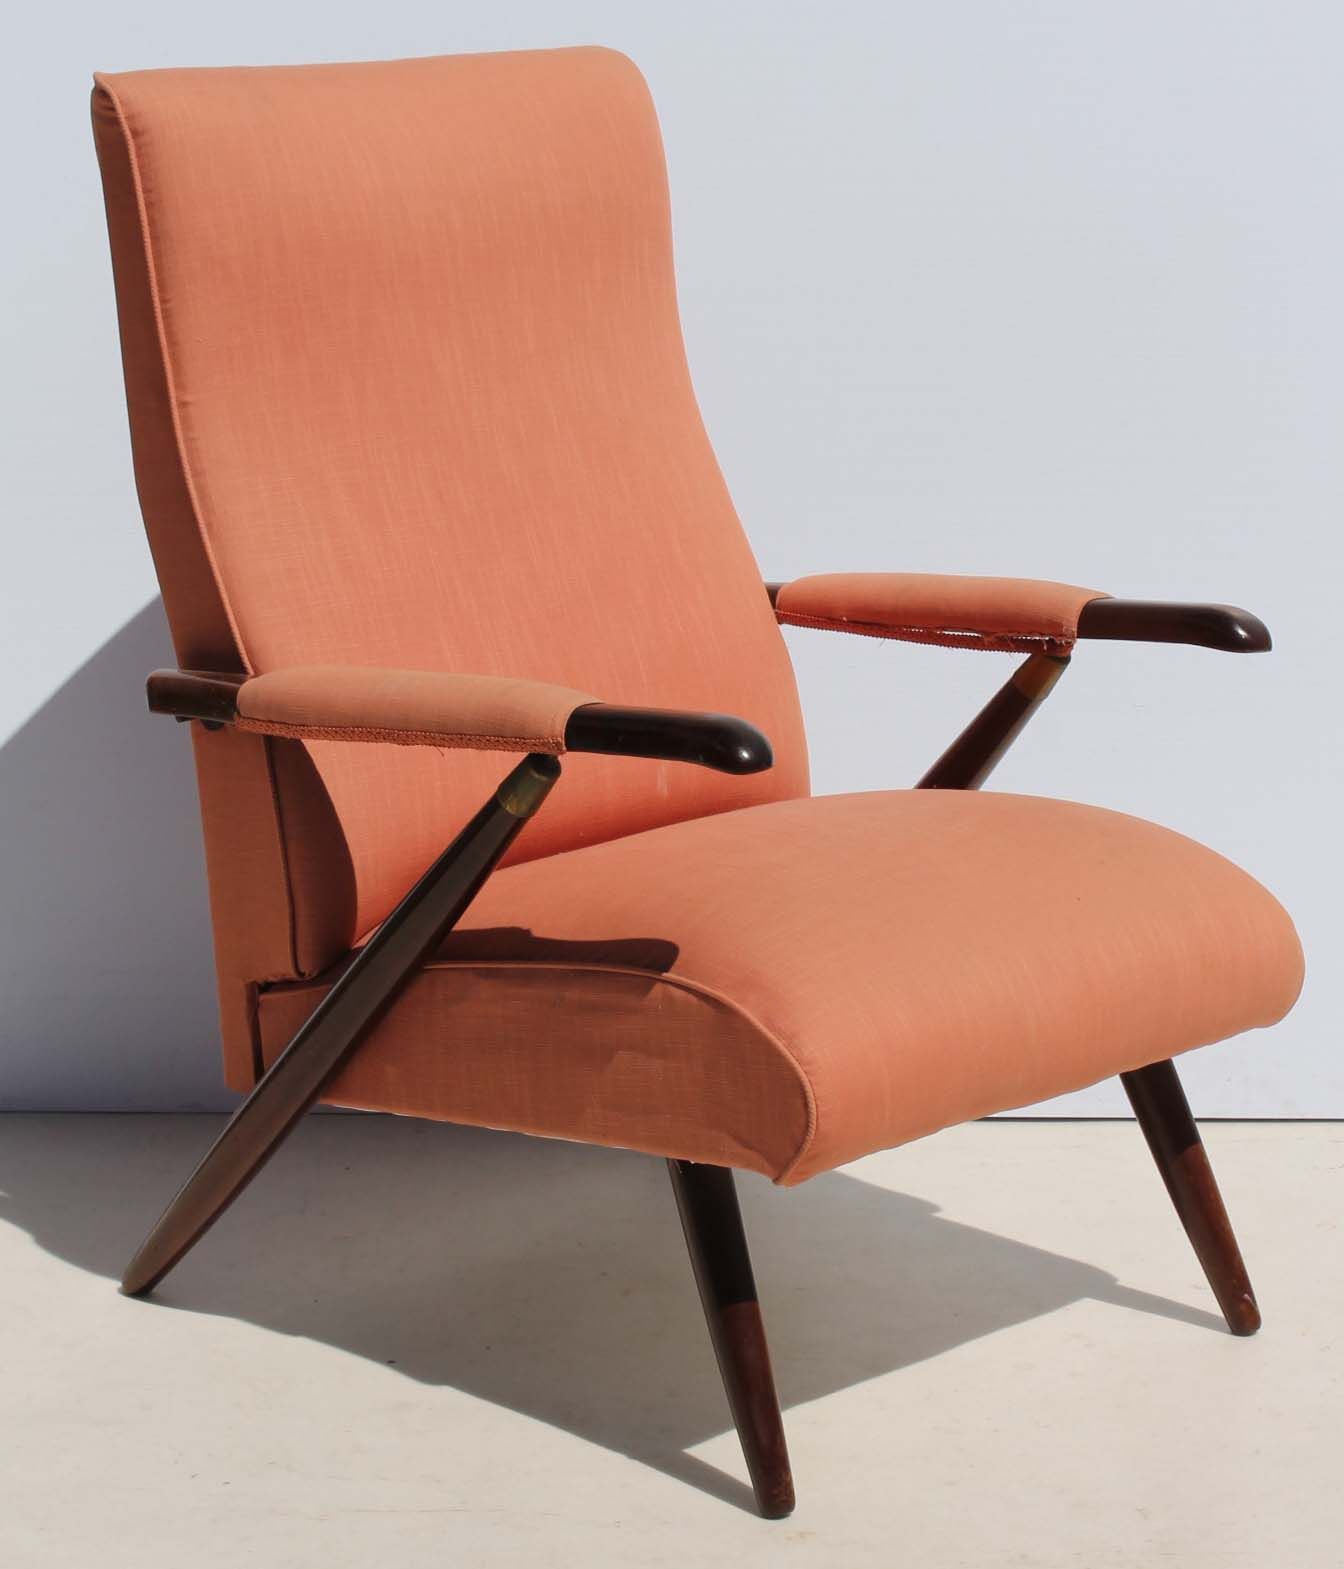 Danishmodern Living Room Furniture: Condition: Used Vintage Retro Recliner Lounge Chair Size